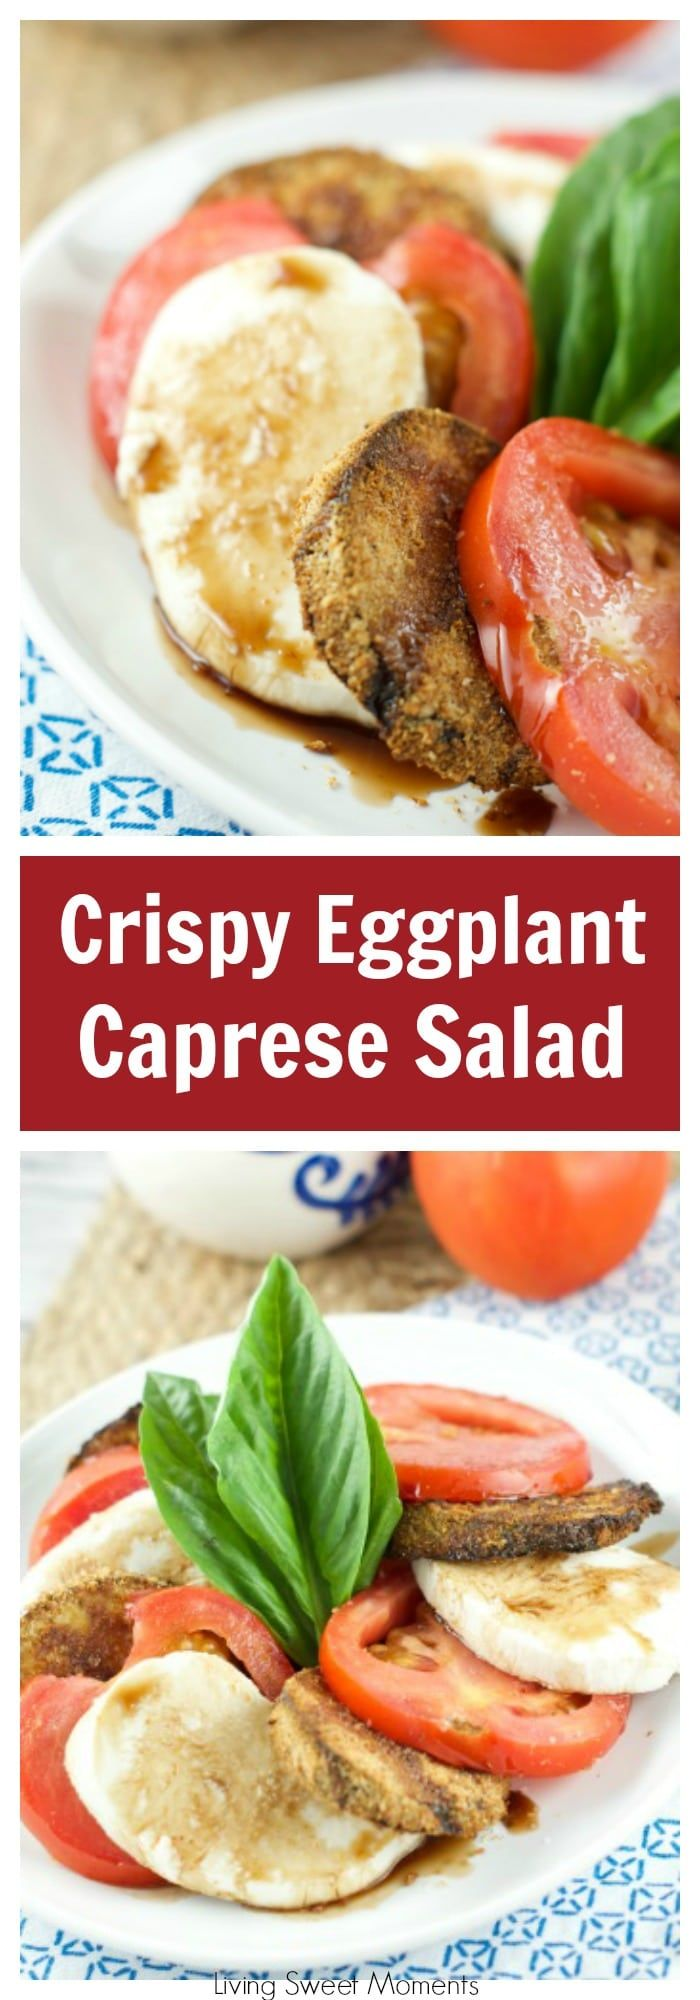 Crispy Eggplant Caprese salad - Crispy baked eggplant, mozzarella cheese, & fresh tomatoes served with balsamic glaze. Delicious as a salad or an appetizer. More delicious salad recipes at livingsweetmoments.com via @Livingsmoments